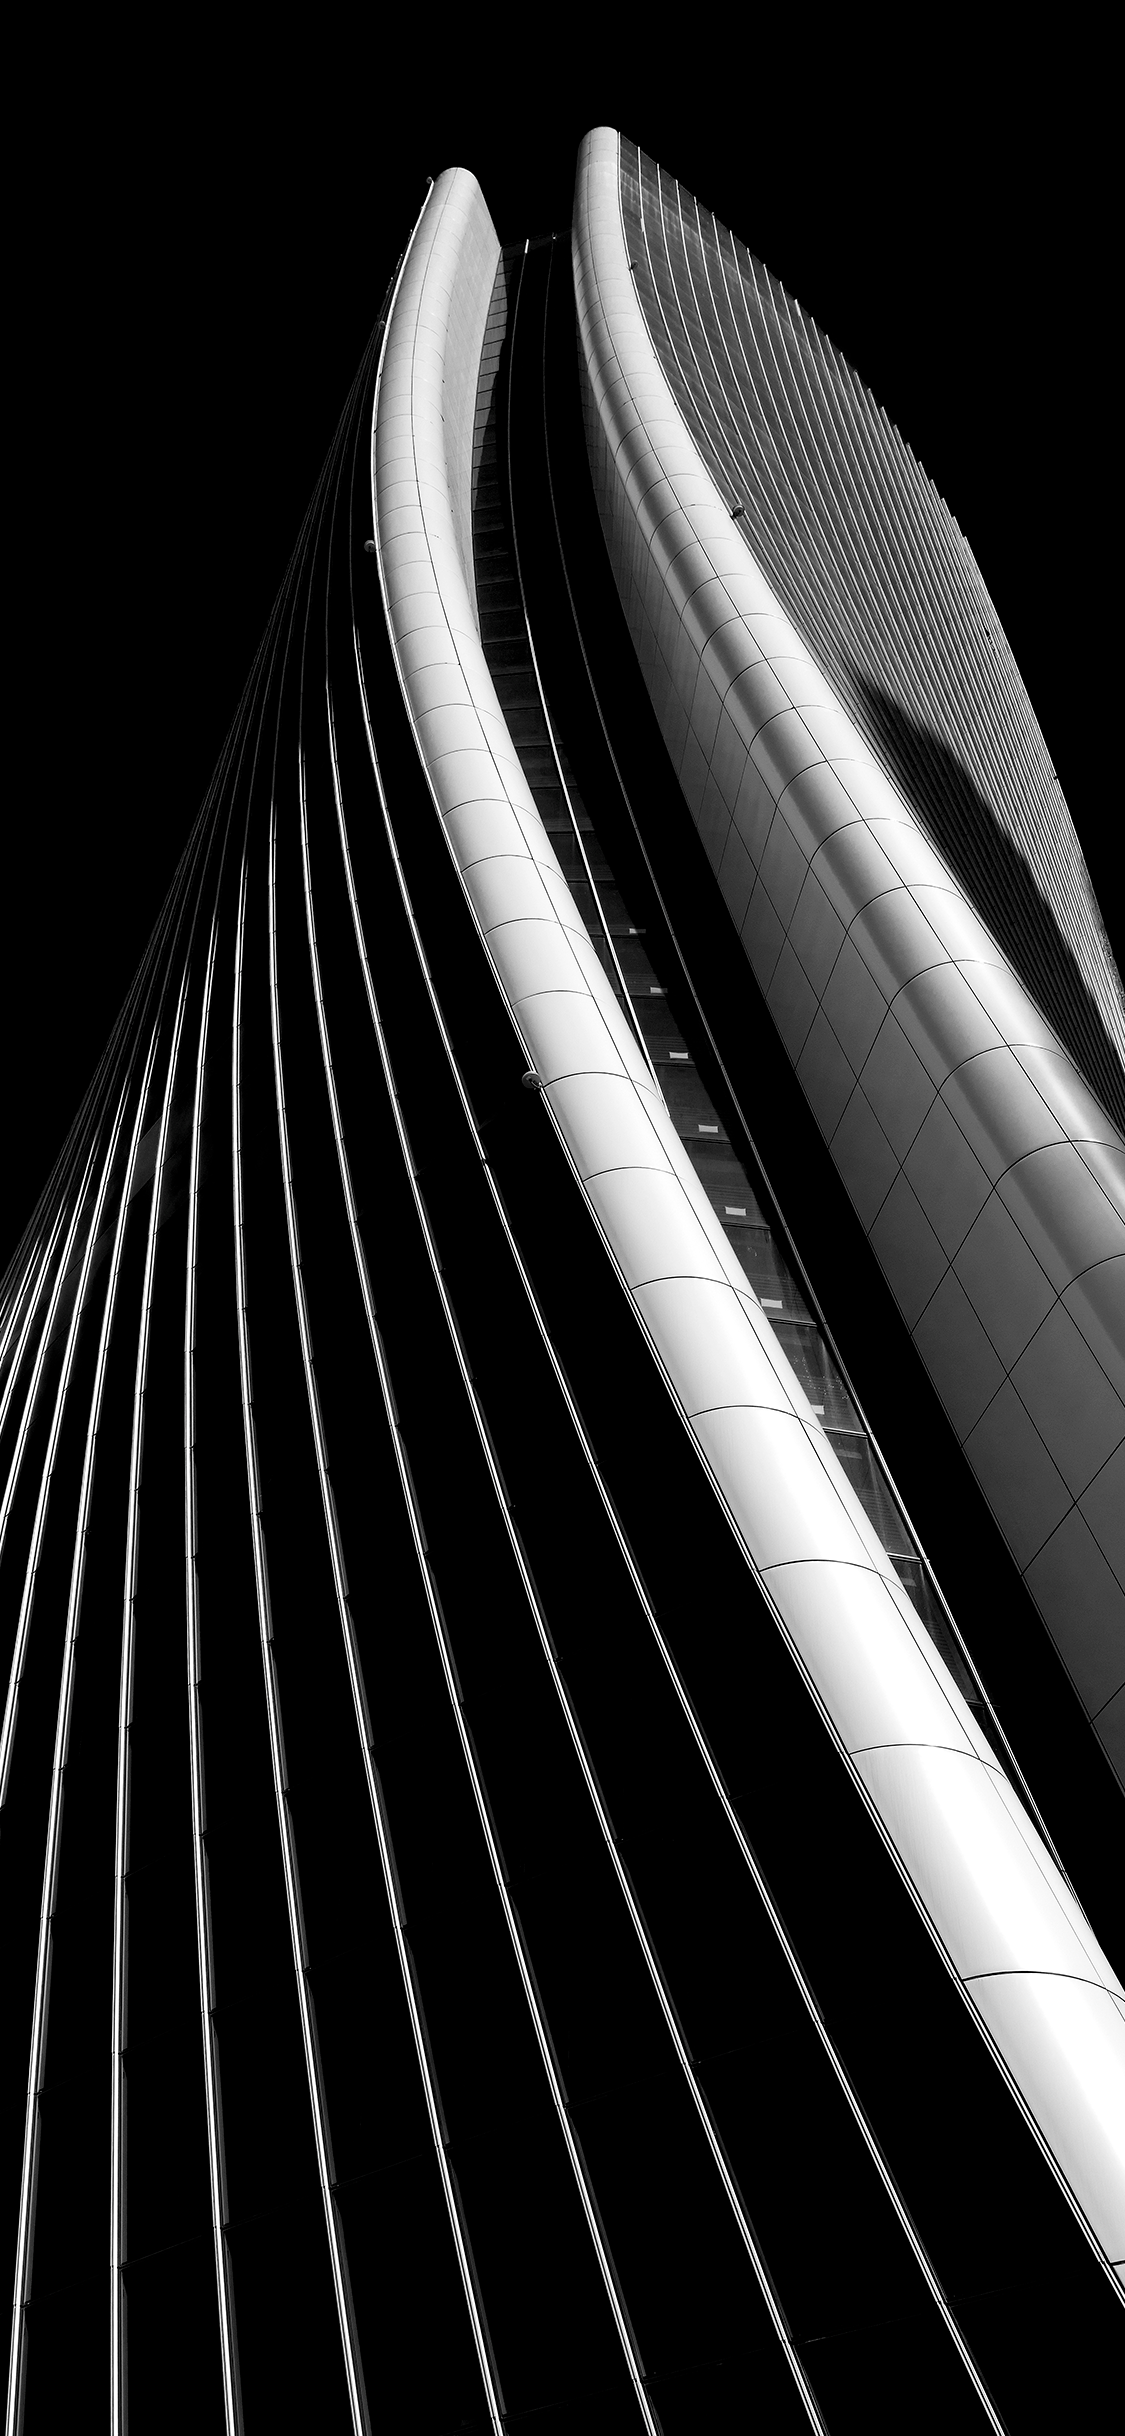 iPhone wallpaper building black Fonds d'écran iPhone du 24/08/2018